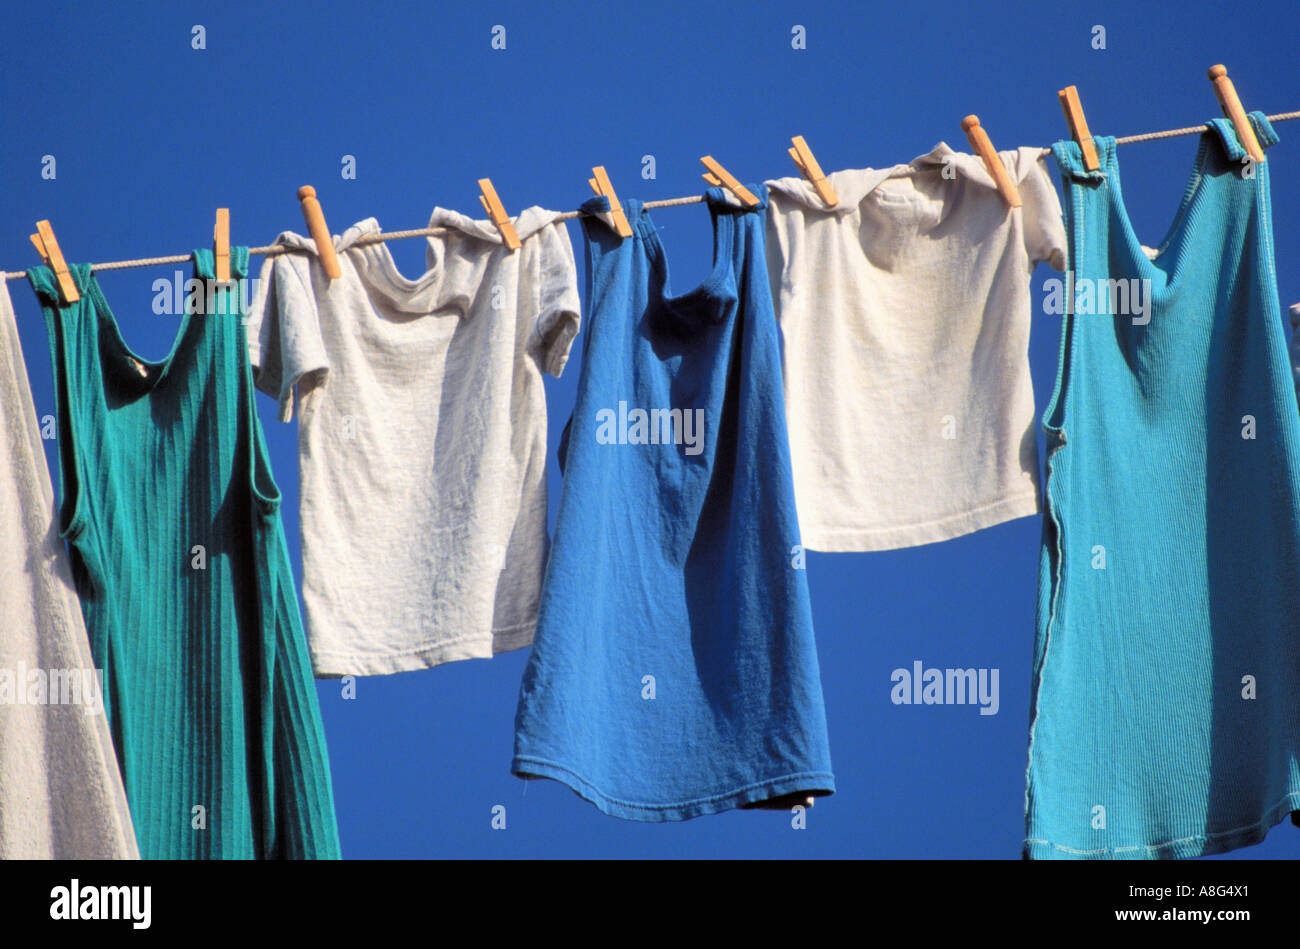 laundry on rope, Sweden - Stock Image